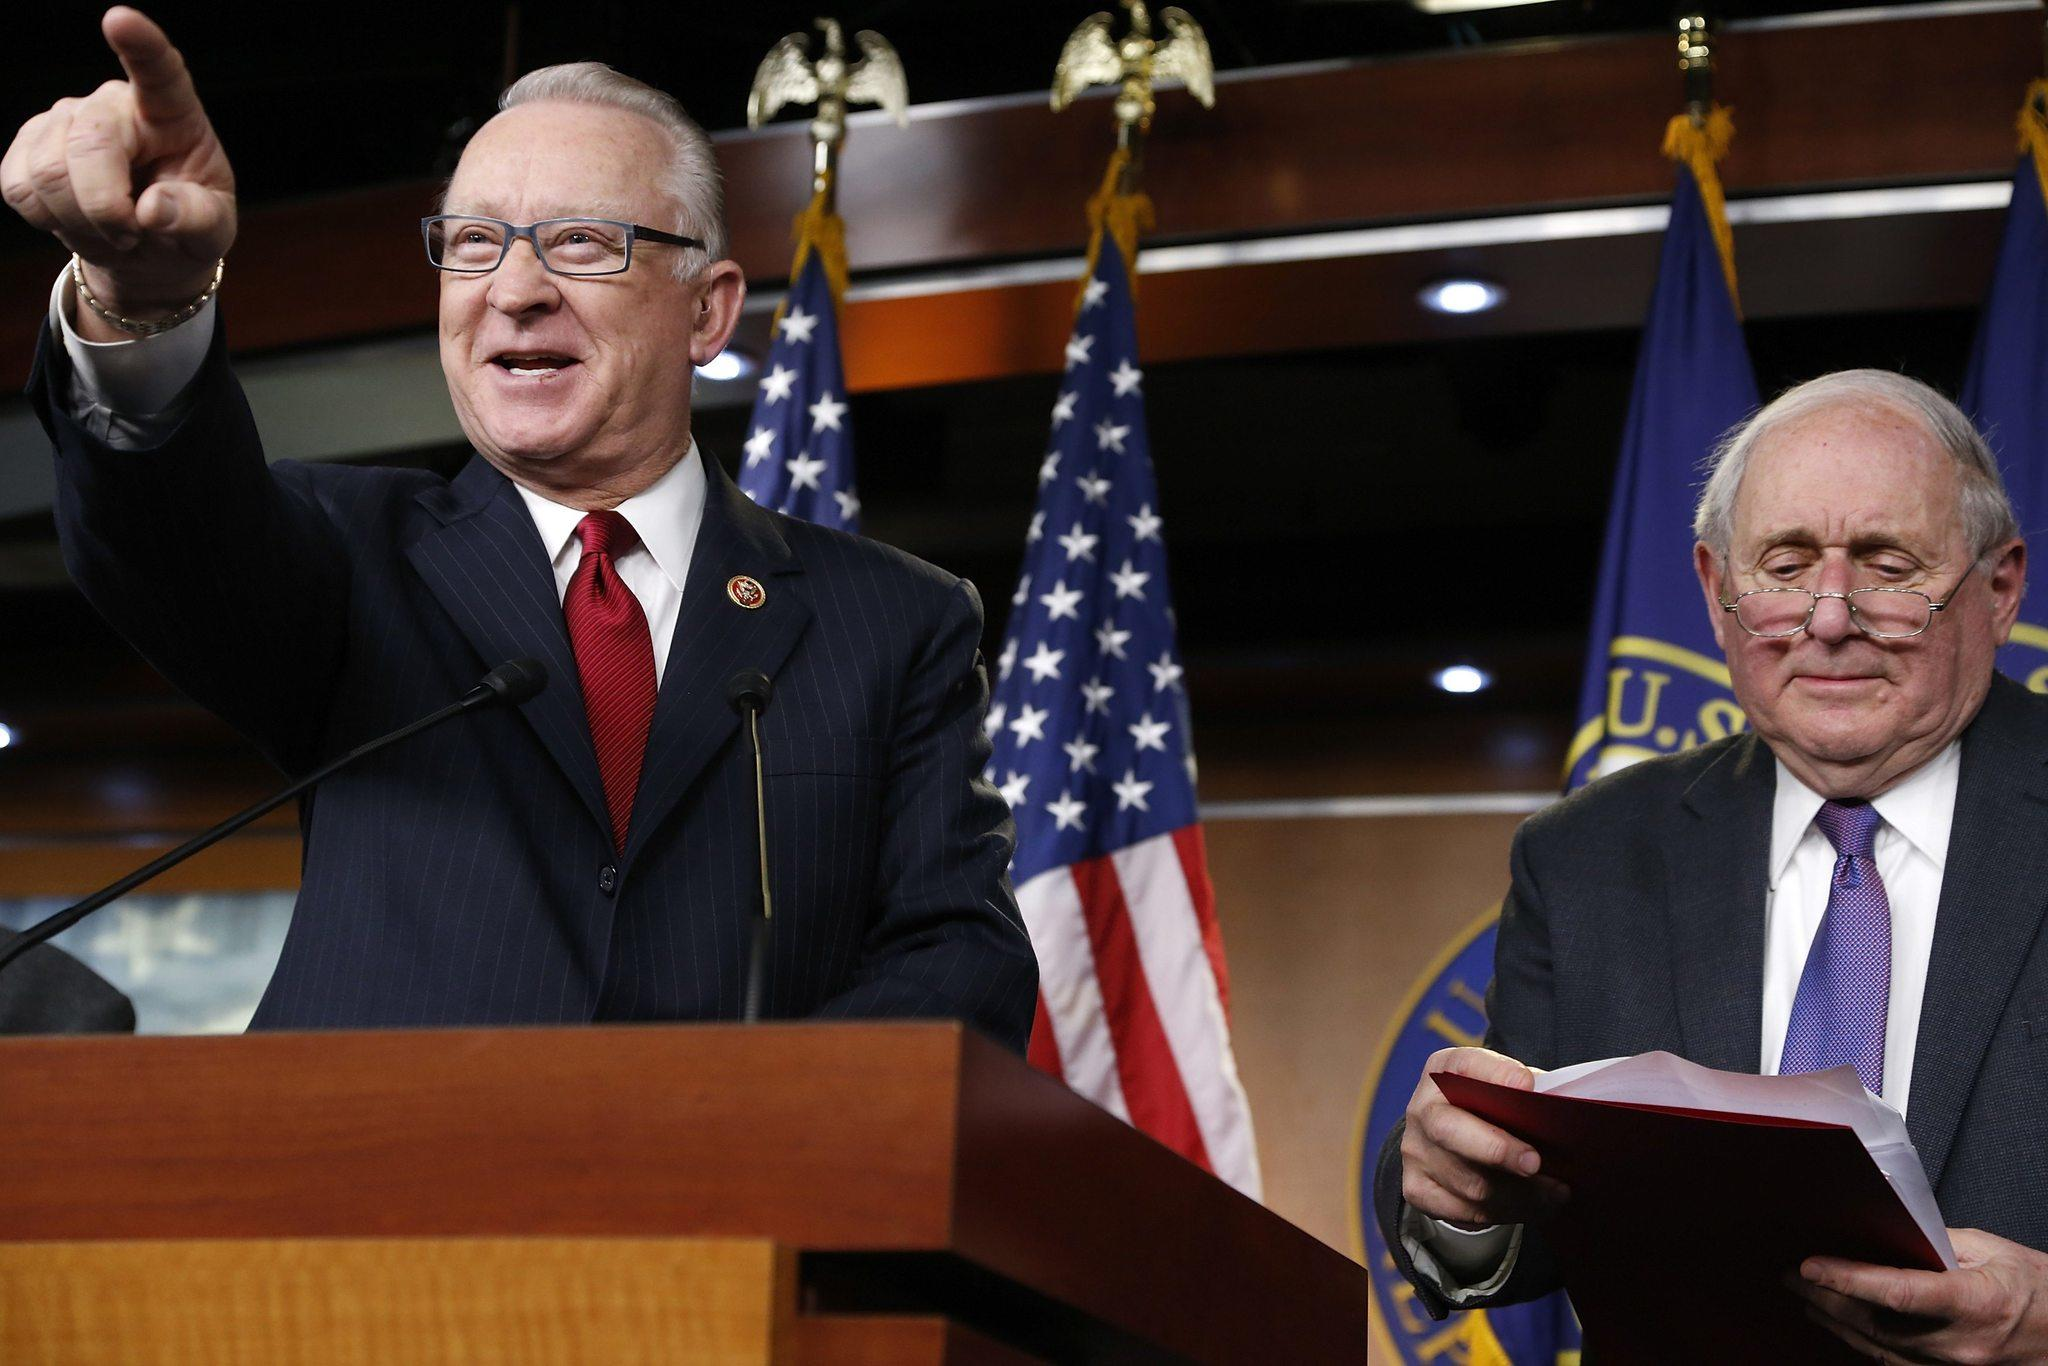 U.S. Representative Buck McKeon (R-CA) (L) and Senator Carl Levin (D-MI) (R), chairmen of the House and Senate Armed Services Committees, hold a news conference to talk about progress between the two chambers on the National Defense Authorization Act at the U.S. Capitol in Washington on Dec. 9.